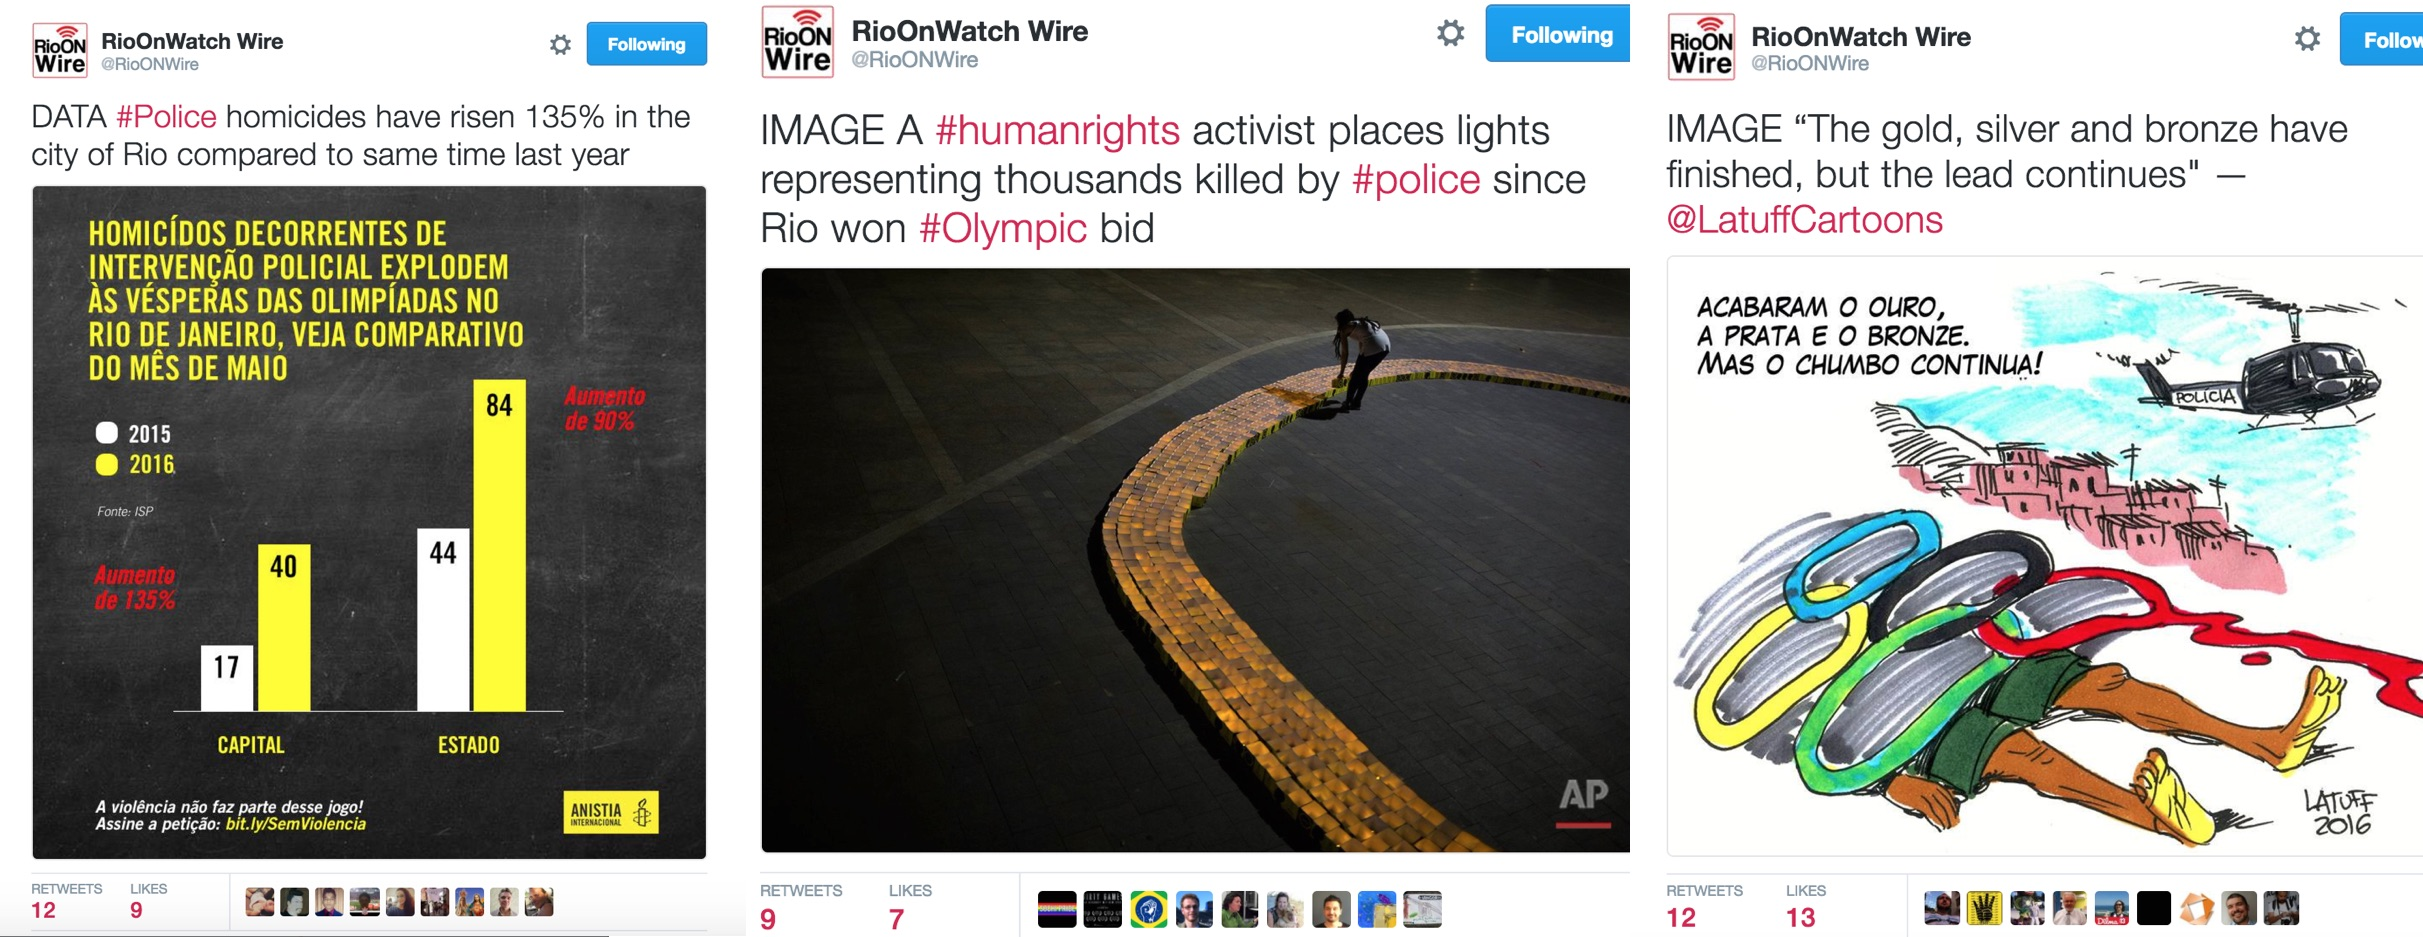 Examples of @RioONWire police violence coverage